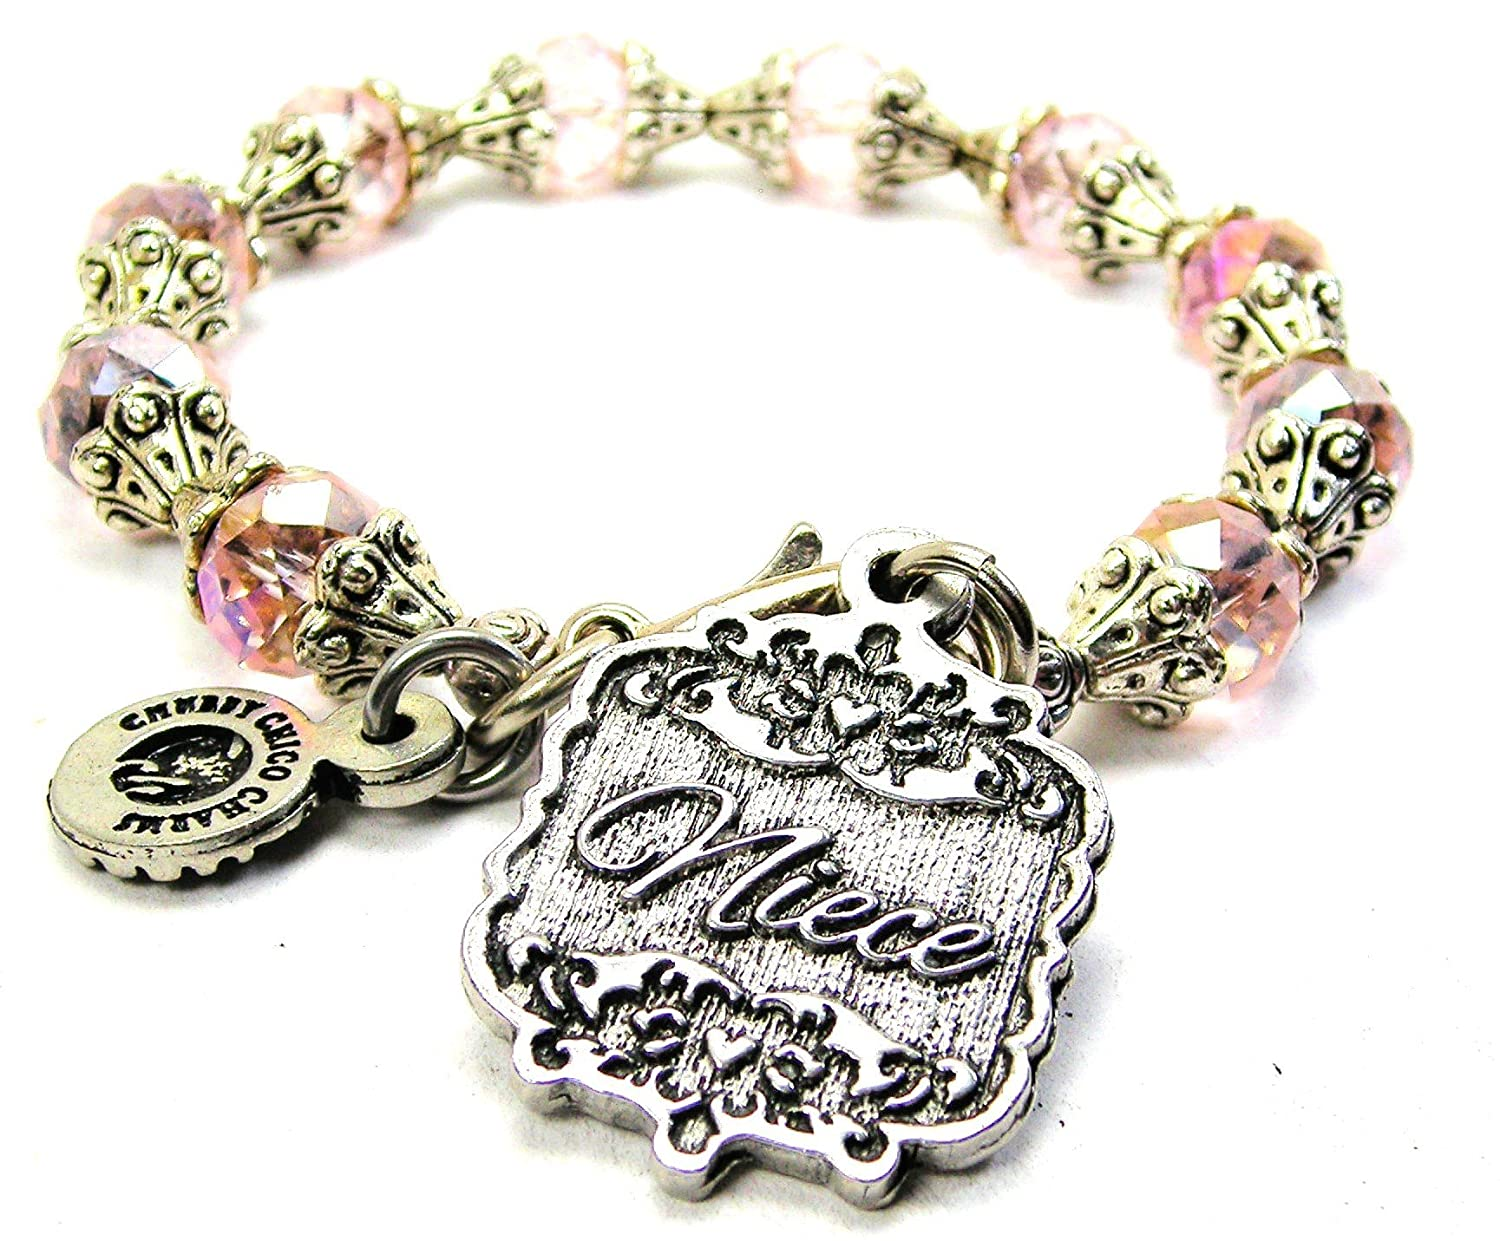 Chubby Chico Charms Niece Victorian Scroll Capped Crystal Bracelet in Lavender Purple